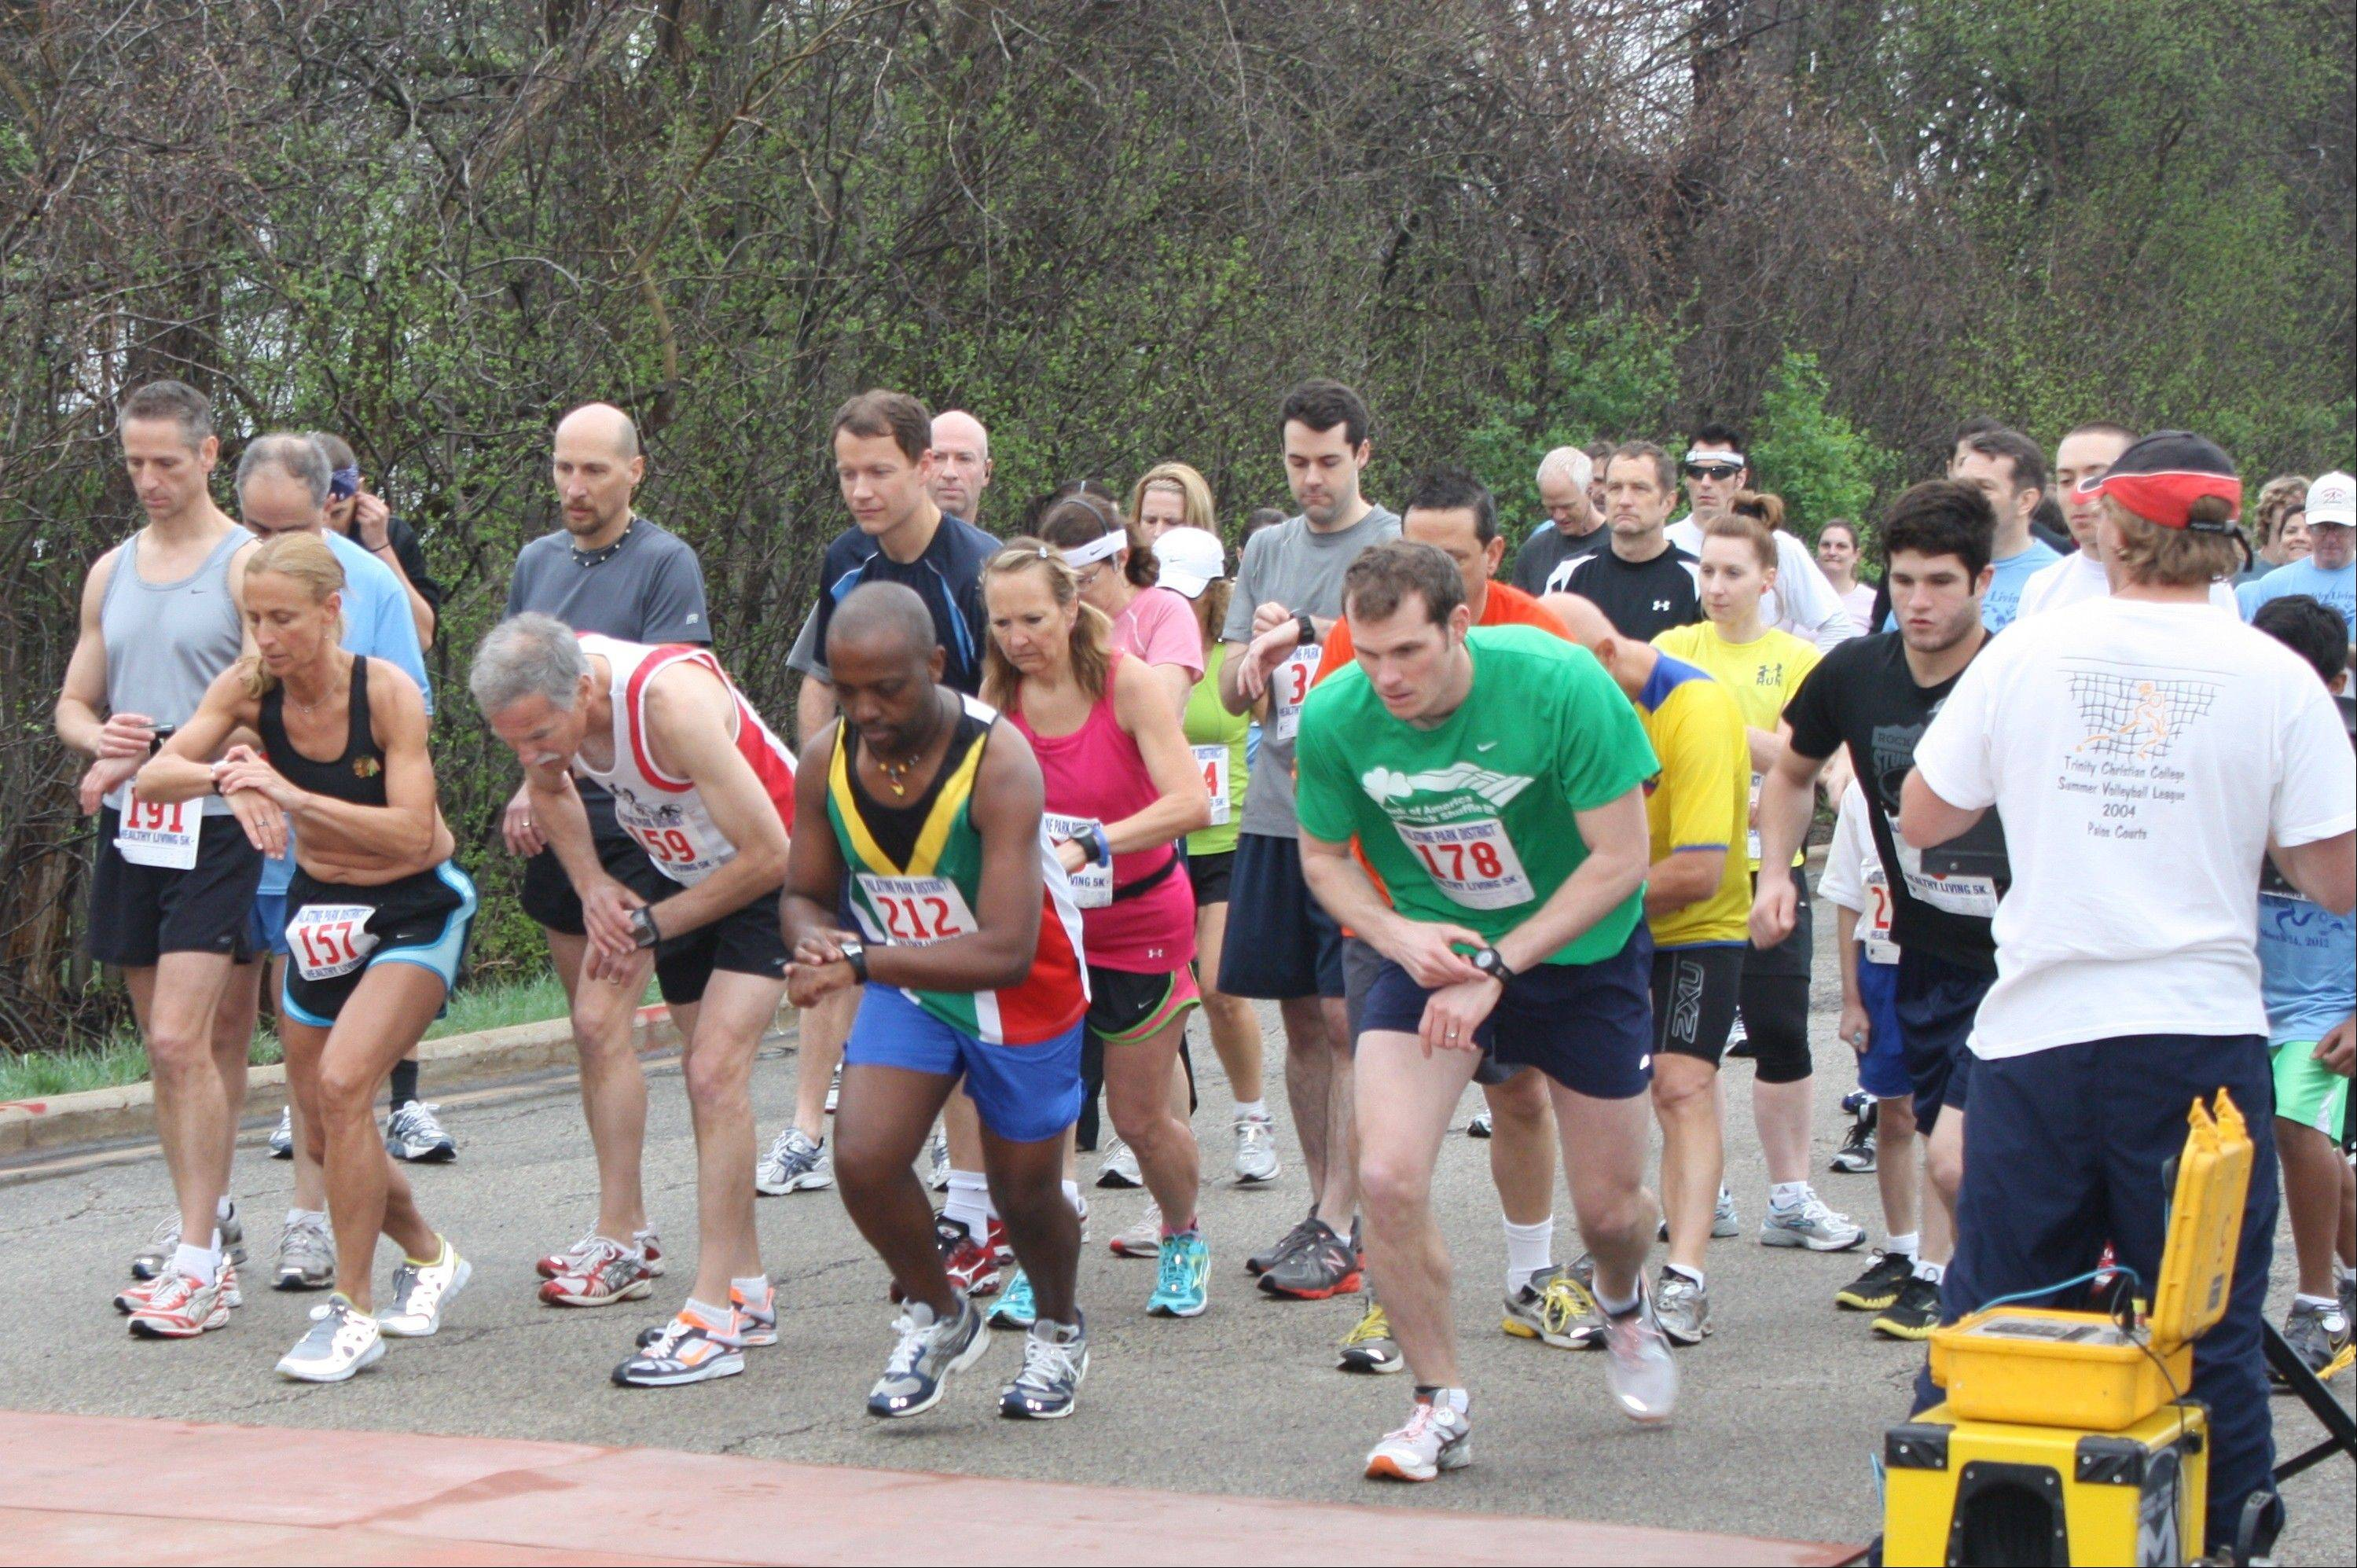 Runners prepare for the start of last year's Healthy Living 5K in Palatine. This year, the Palatine Park District will hold its Healthy Living Event on Saturday, April 6, at Birchwood Recreation Center. The second annual event includes a 5K run/walk, 12-mile bike ride and a healthy expo.